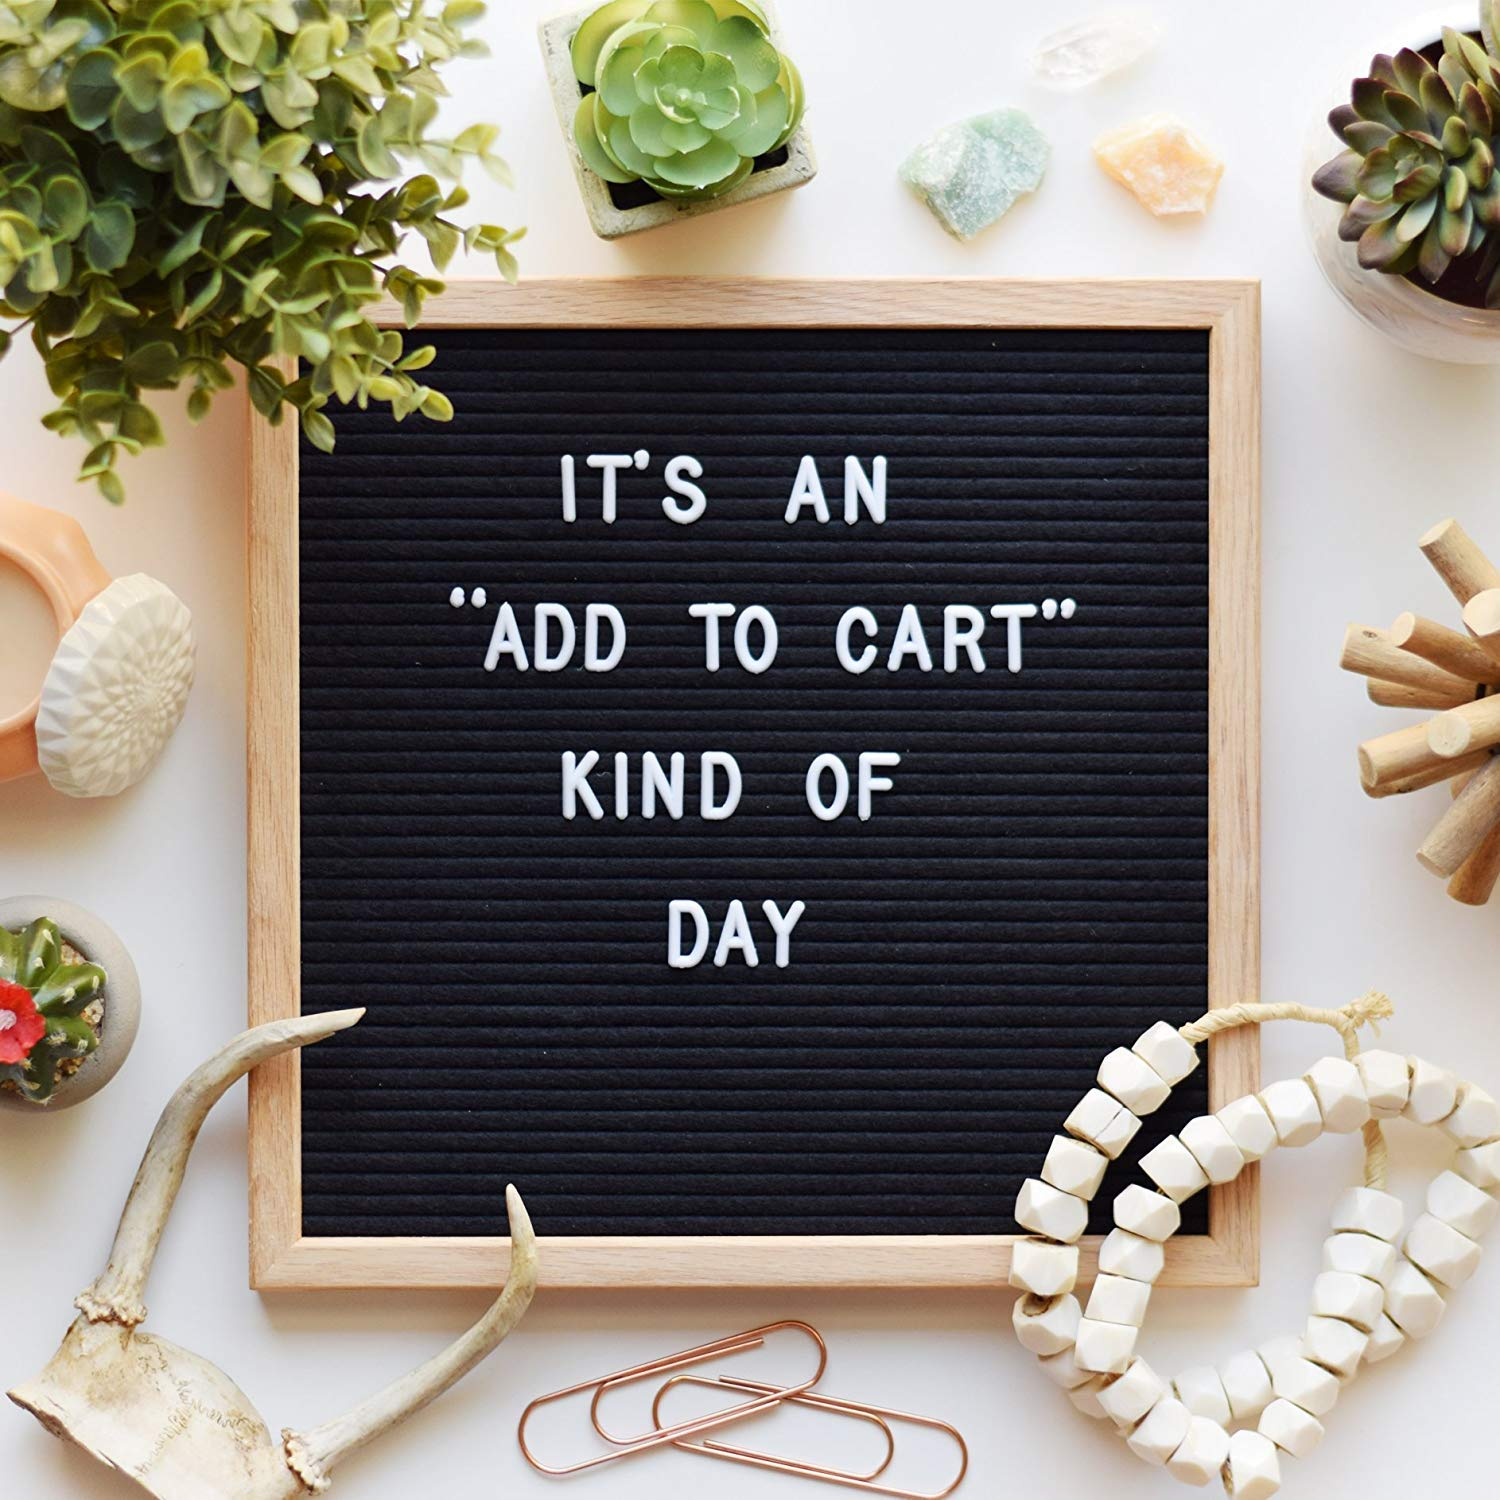 Changeable Letter Board (10'' x 10'') with 435 Changeable Letters (Letters, Numbers, Symbols) & 45 Emoji | This Wooden Felt Board Has a Kick Stand and Wall Mount - Perfect for Present Or Celebration